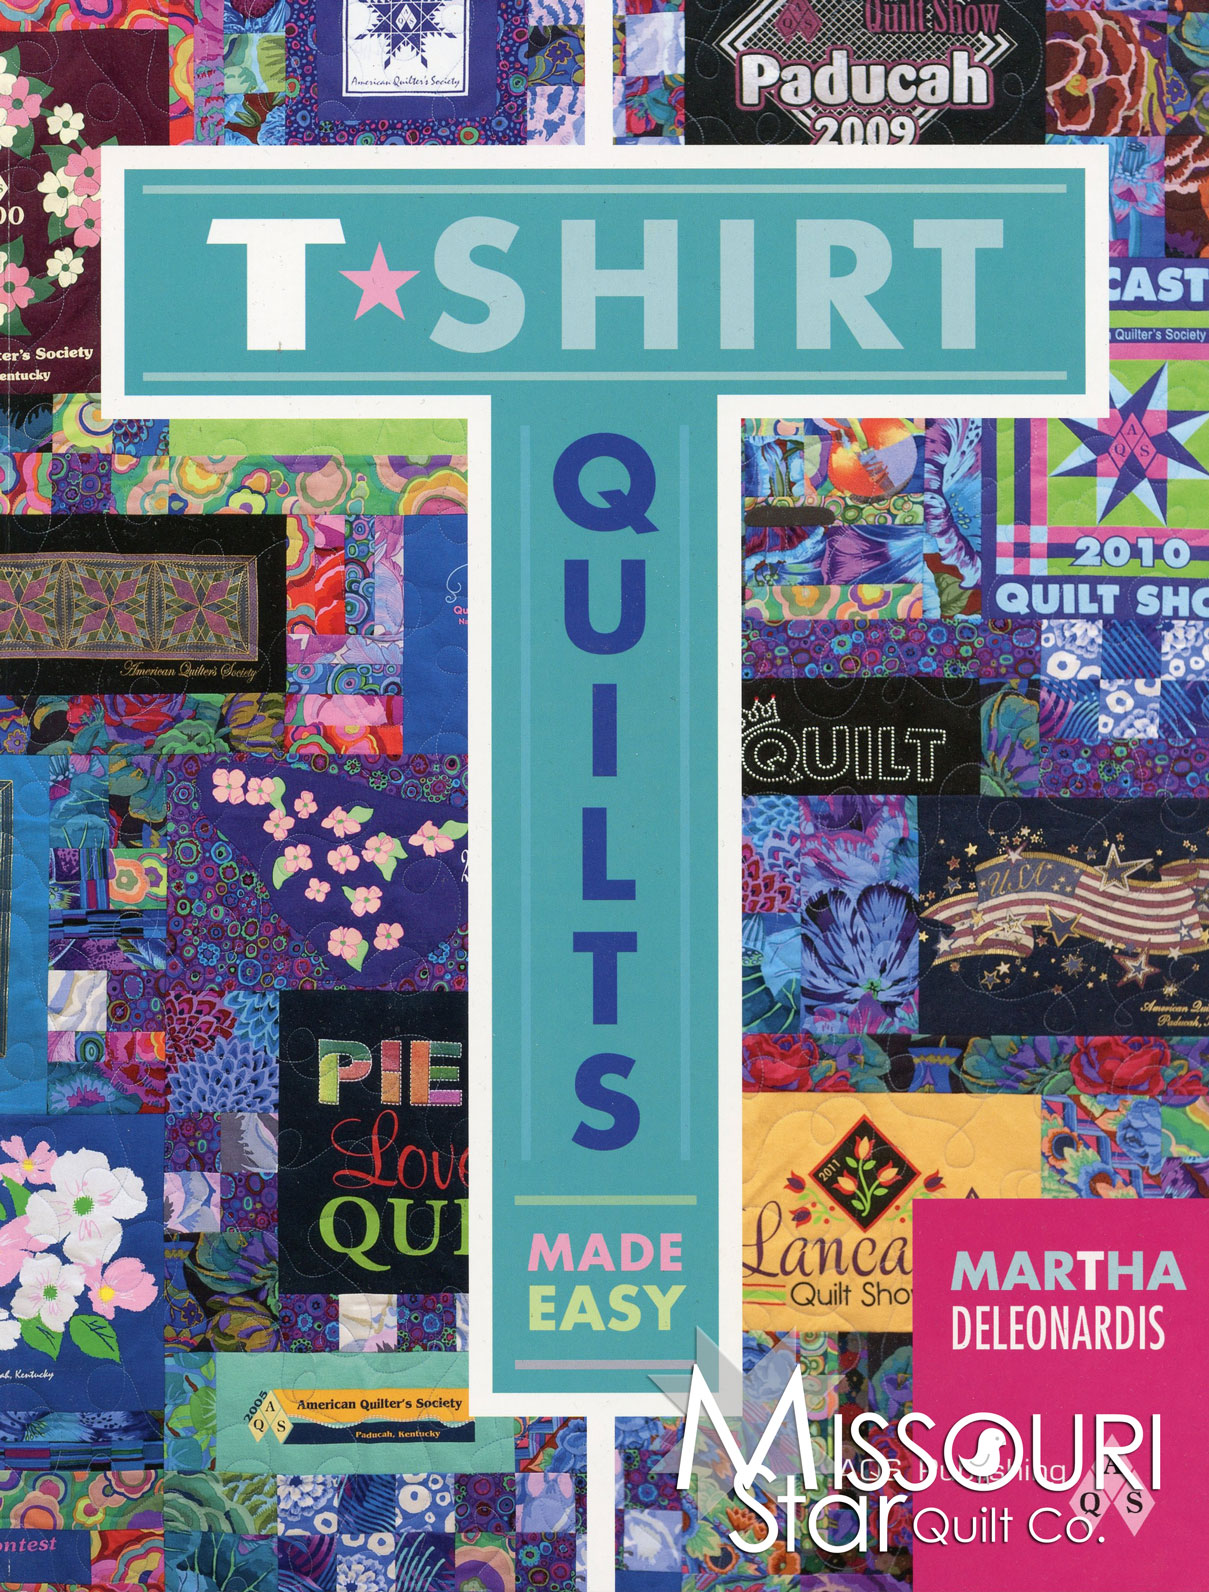 T Shirt Quilt Pattern Book : T-Shirt Quilts Made Easy Book - American Quilter s Society Missouri Star Quilt Co.